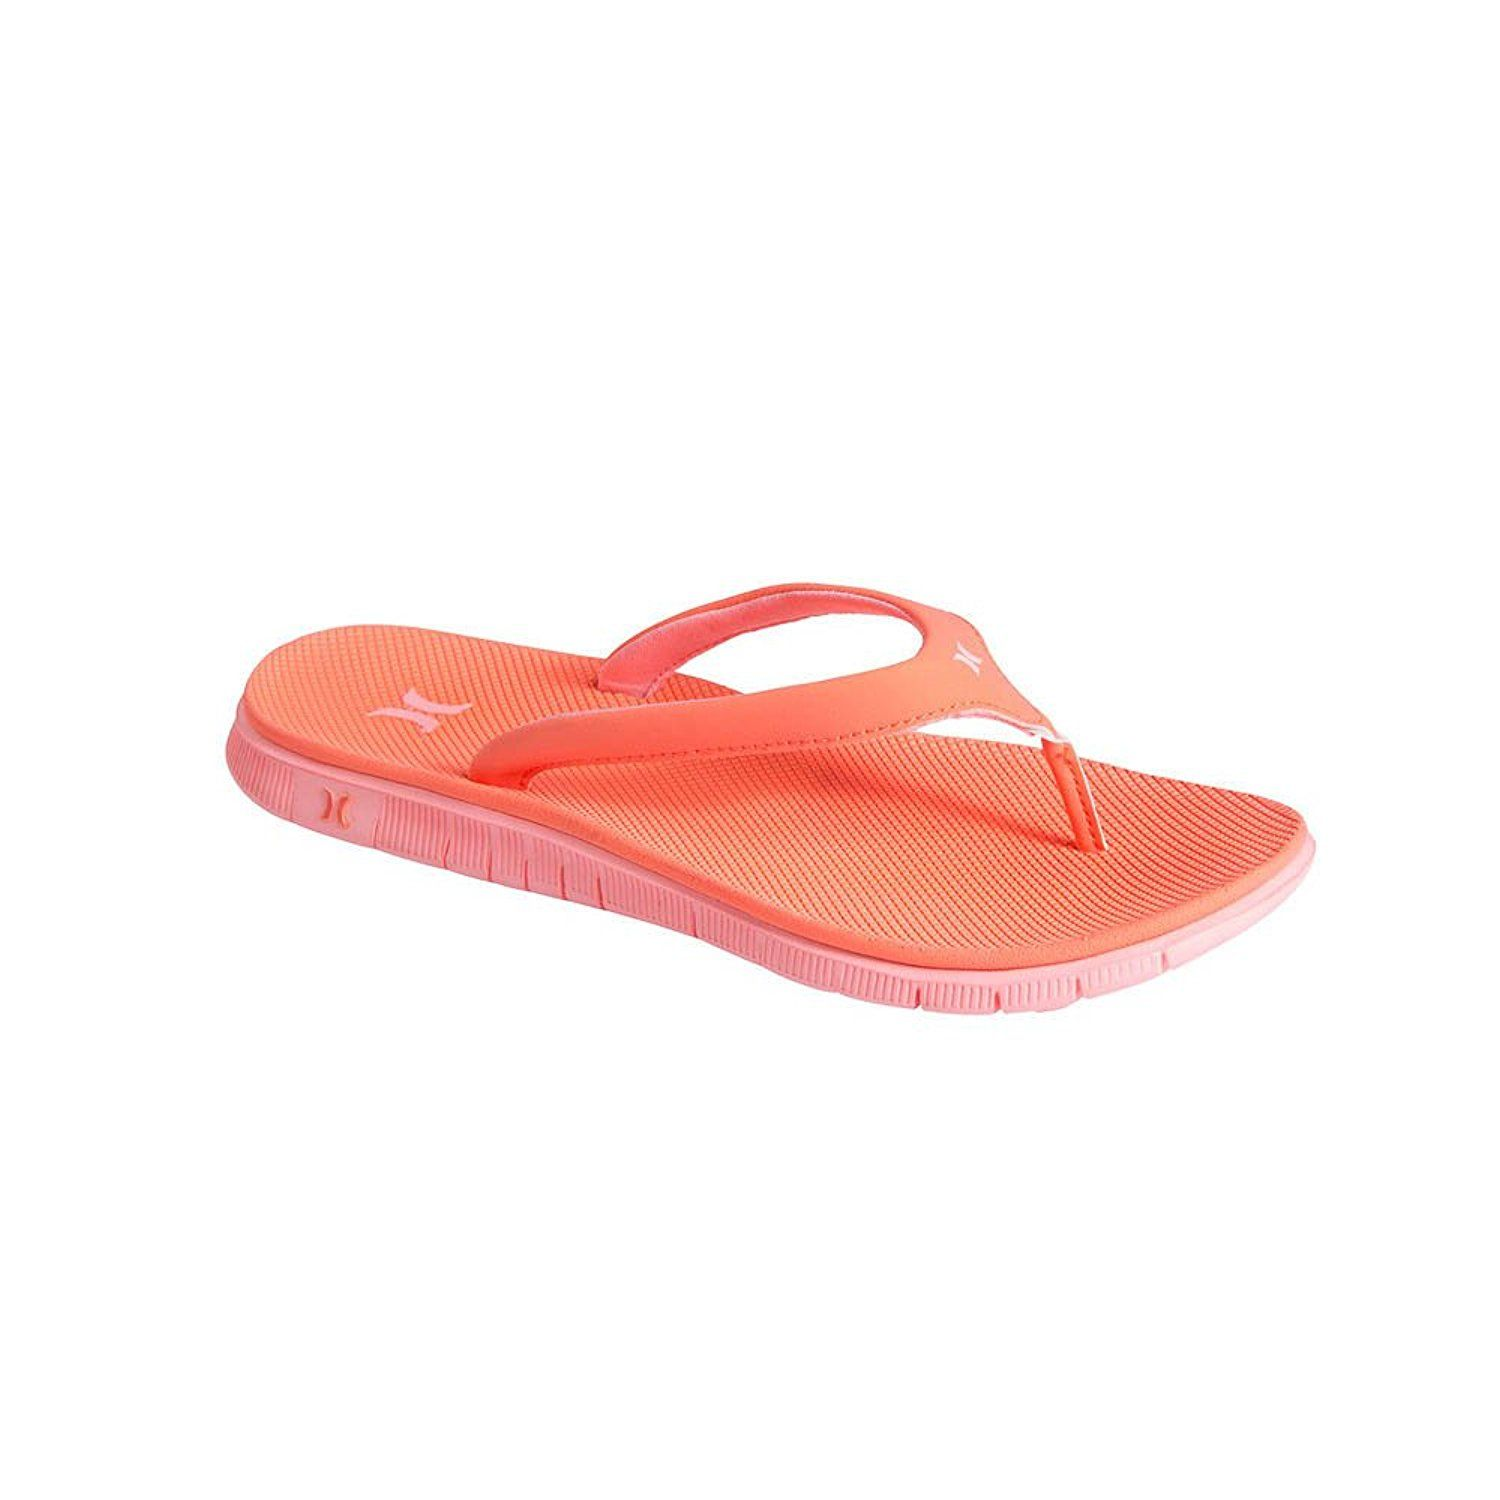 d4452a65e0d8bb Hurley Womens YC Phantom Sandals Coral     Check this awesome image   Flip  flops